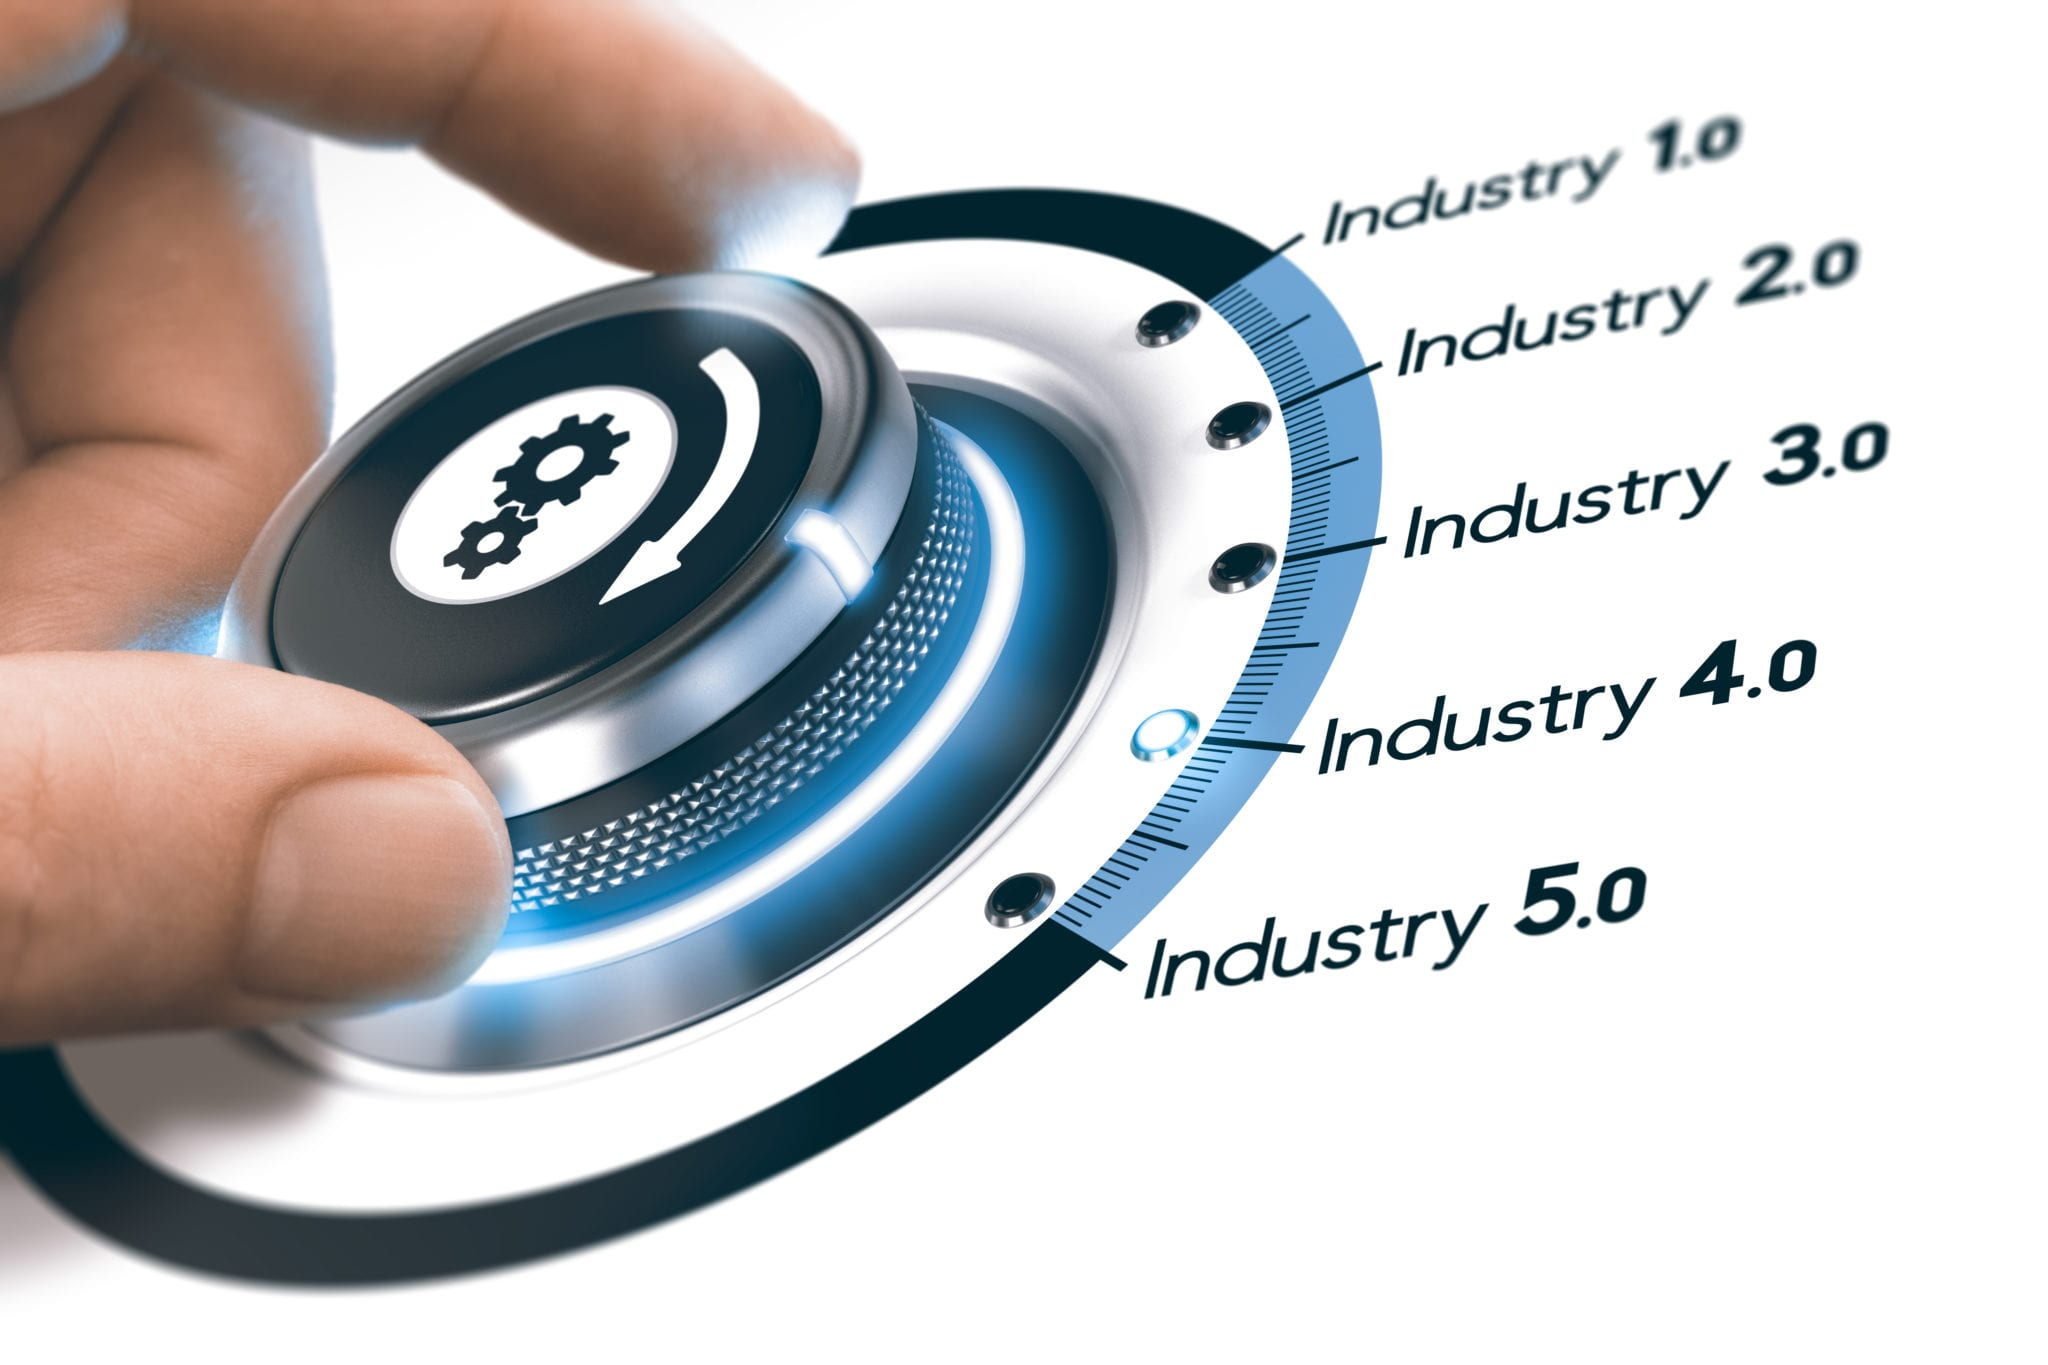 Deloitte examines if companies are ready for the Fourth Industrial